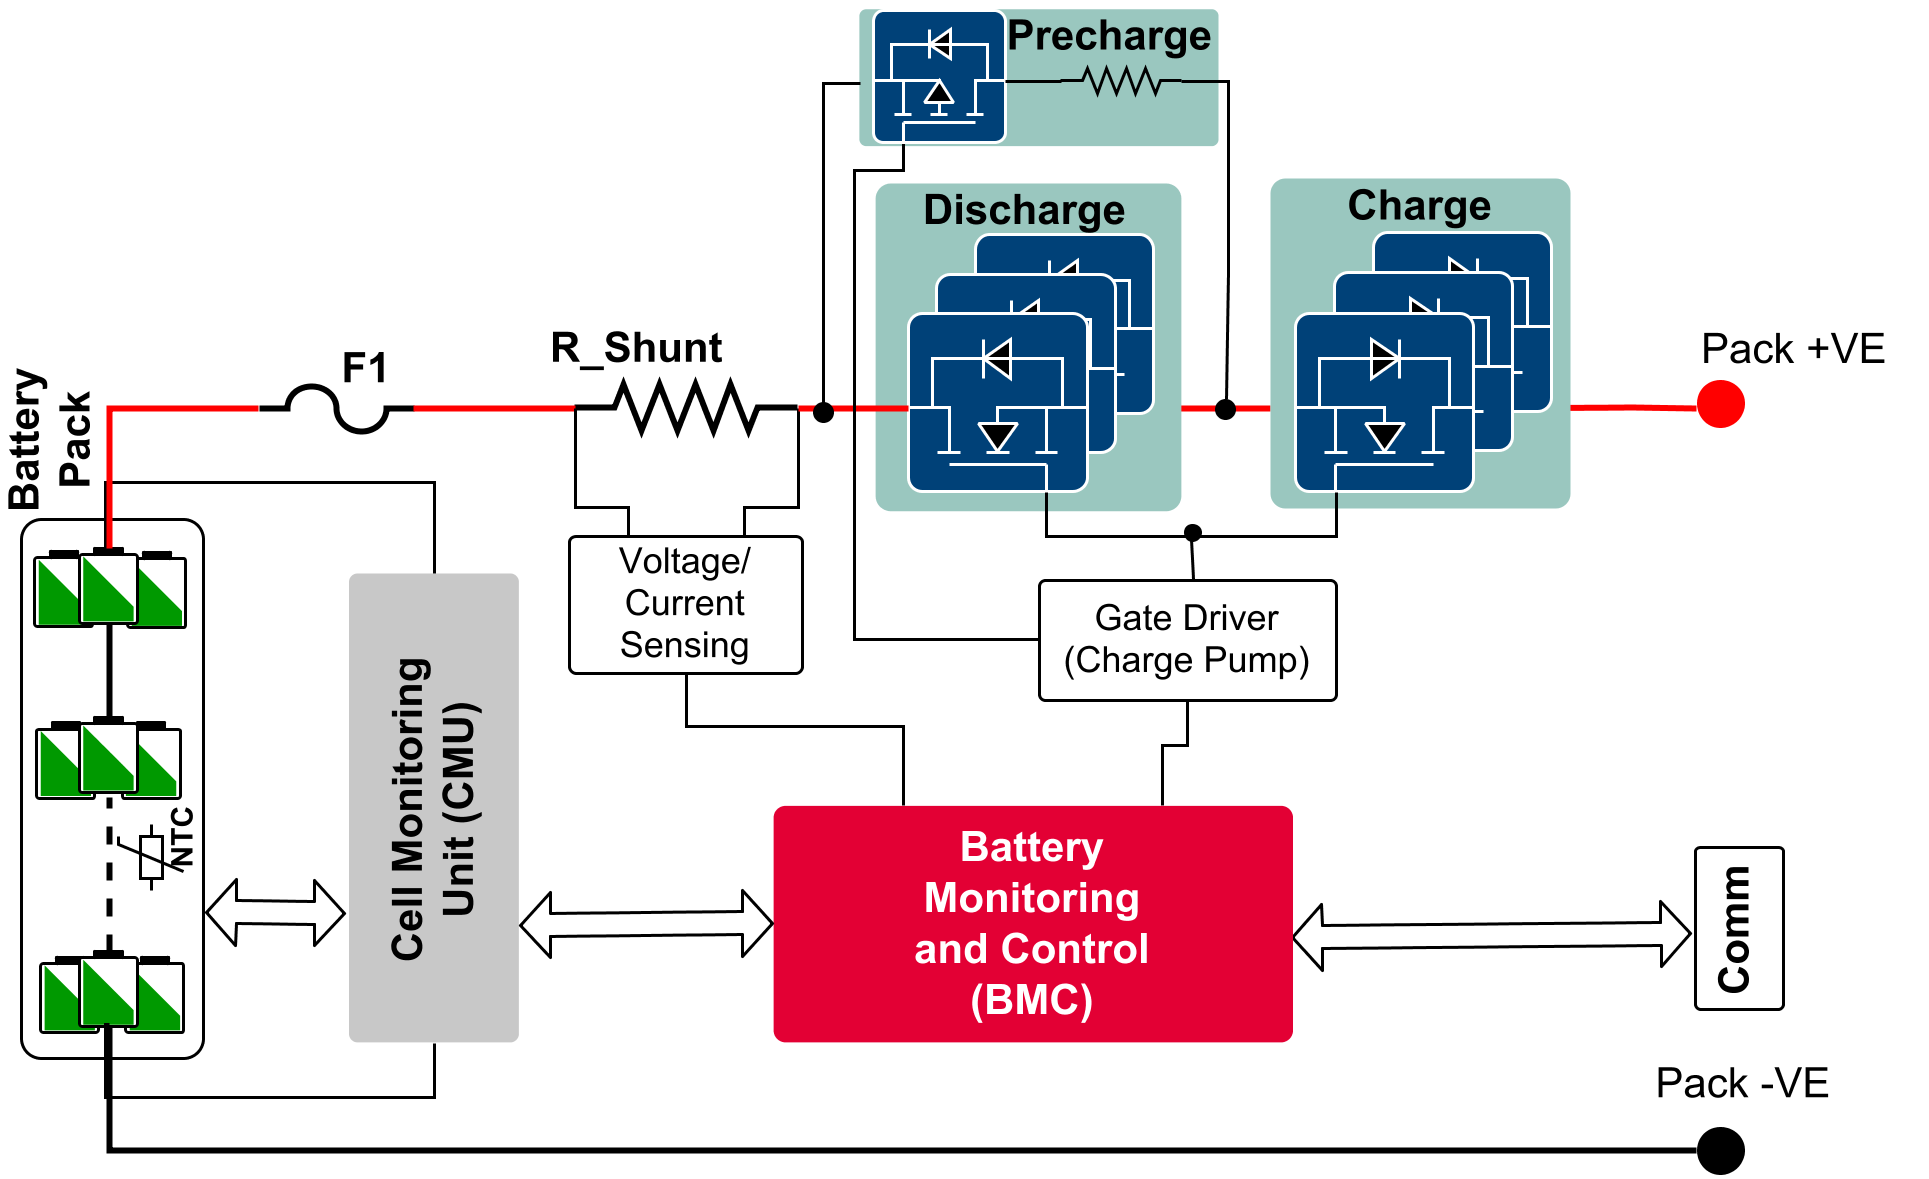 https://edit.infineon.com/cms/_images/application/solutions/Source-to-Source-Protection-with-Pre-charge-using-P-Ch.PNG